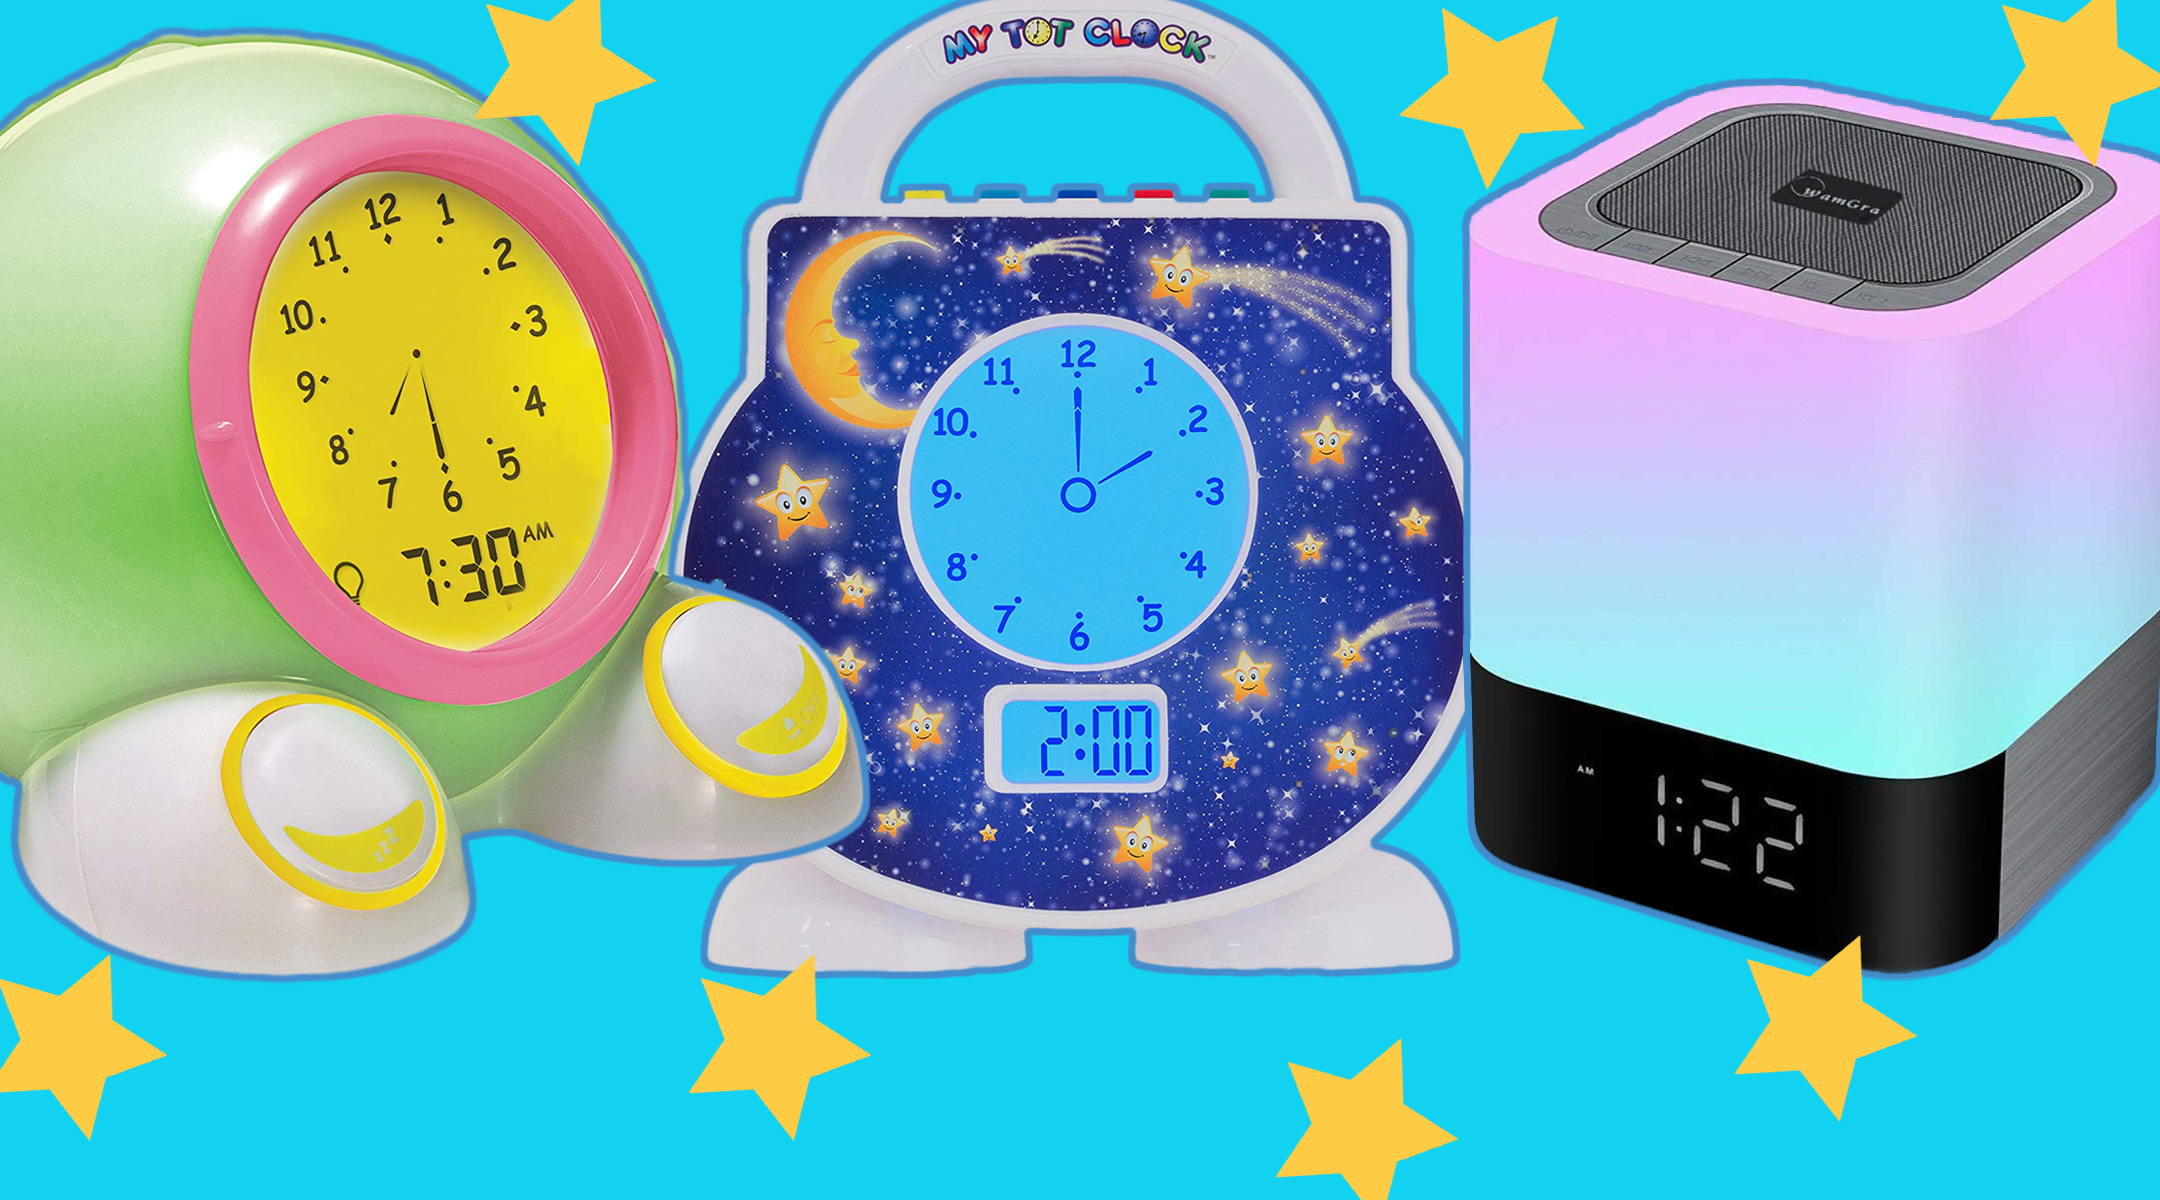 All-in-One Toddler Sleep Clock, Alarm Clock, Timeout Timer, and My Tot Clock